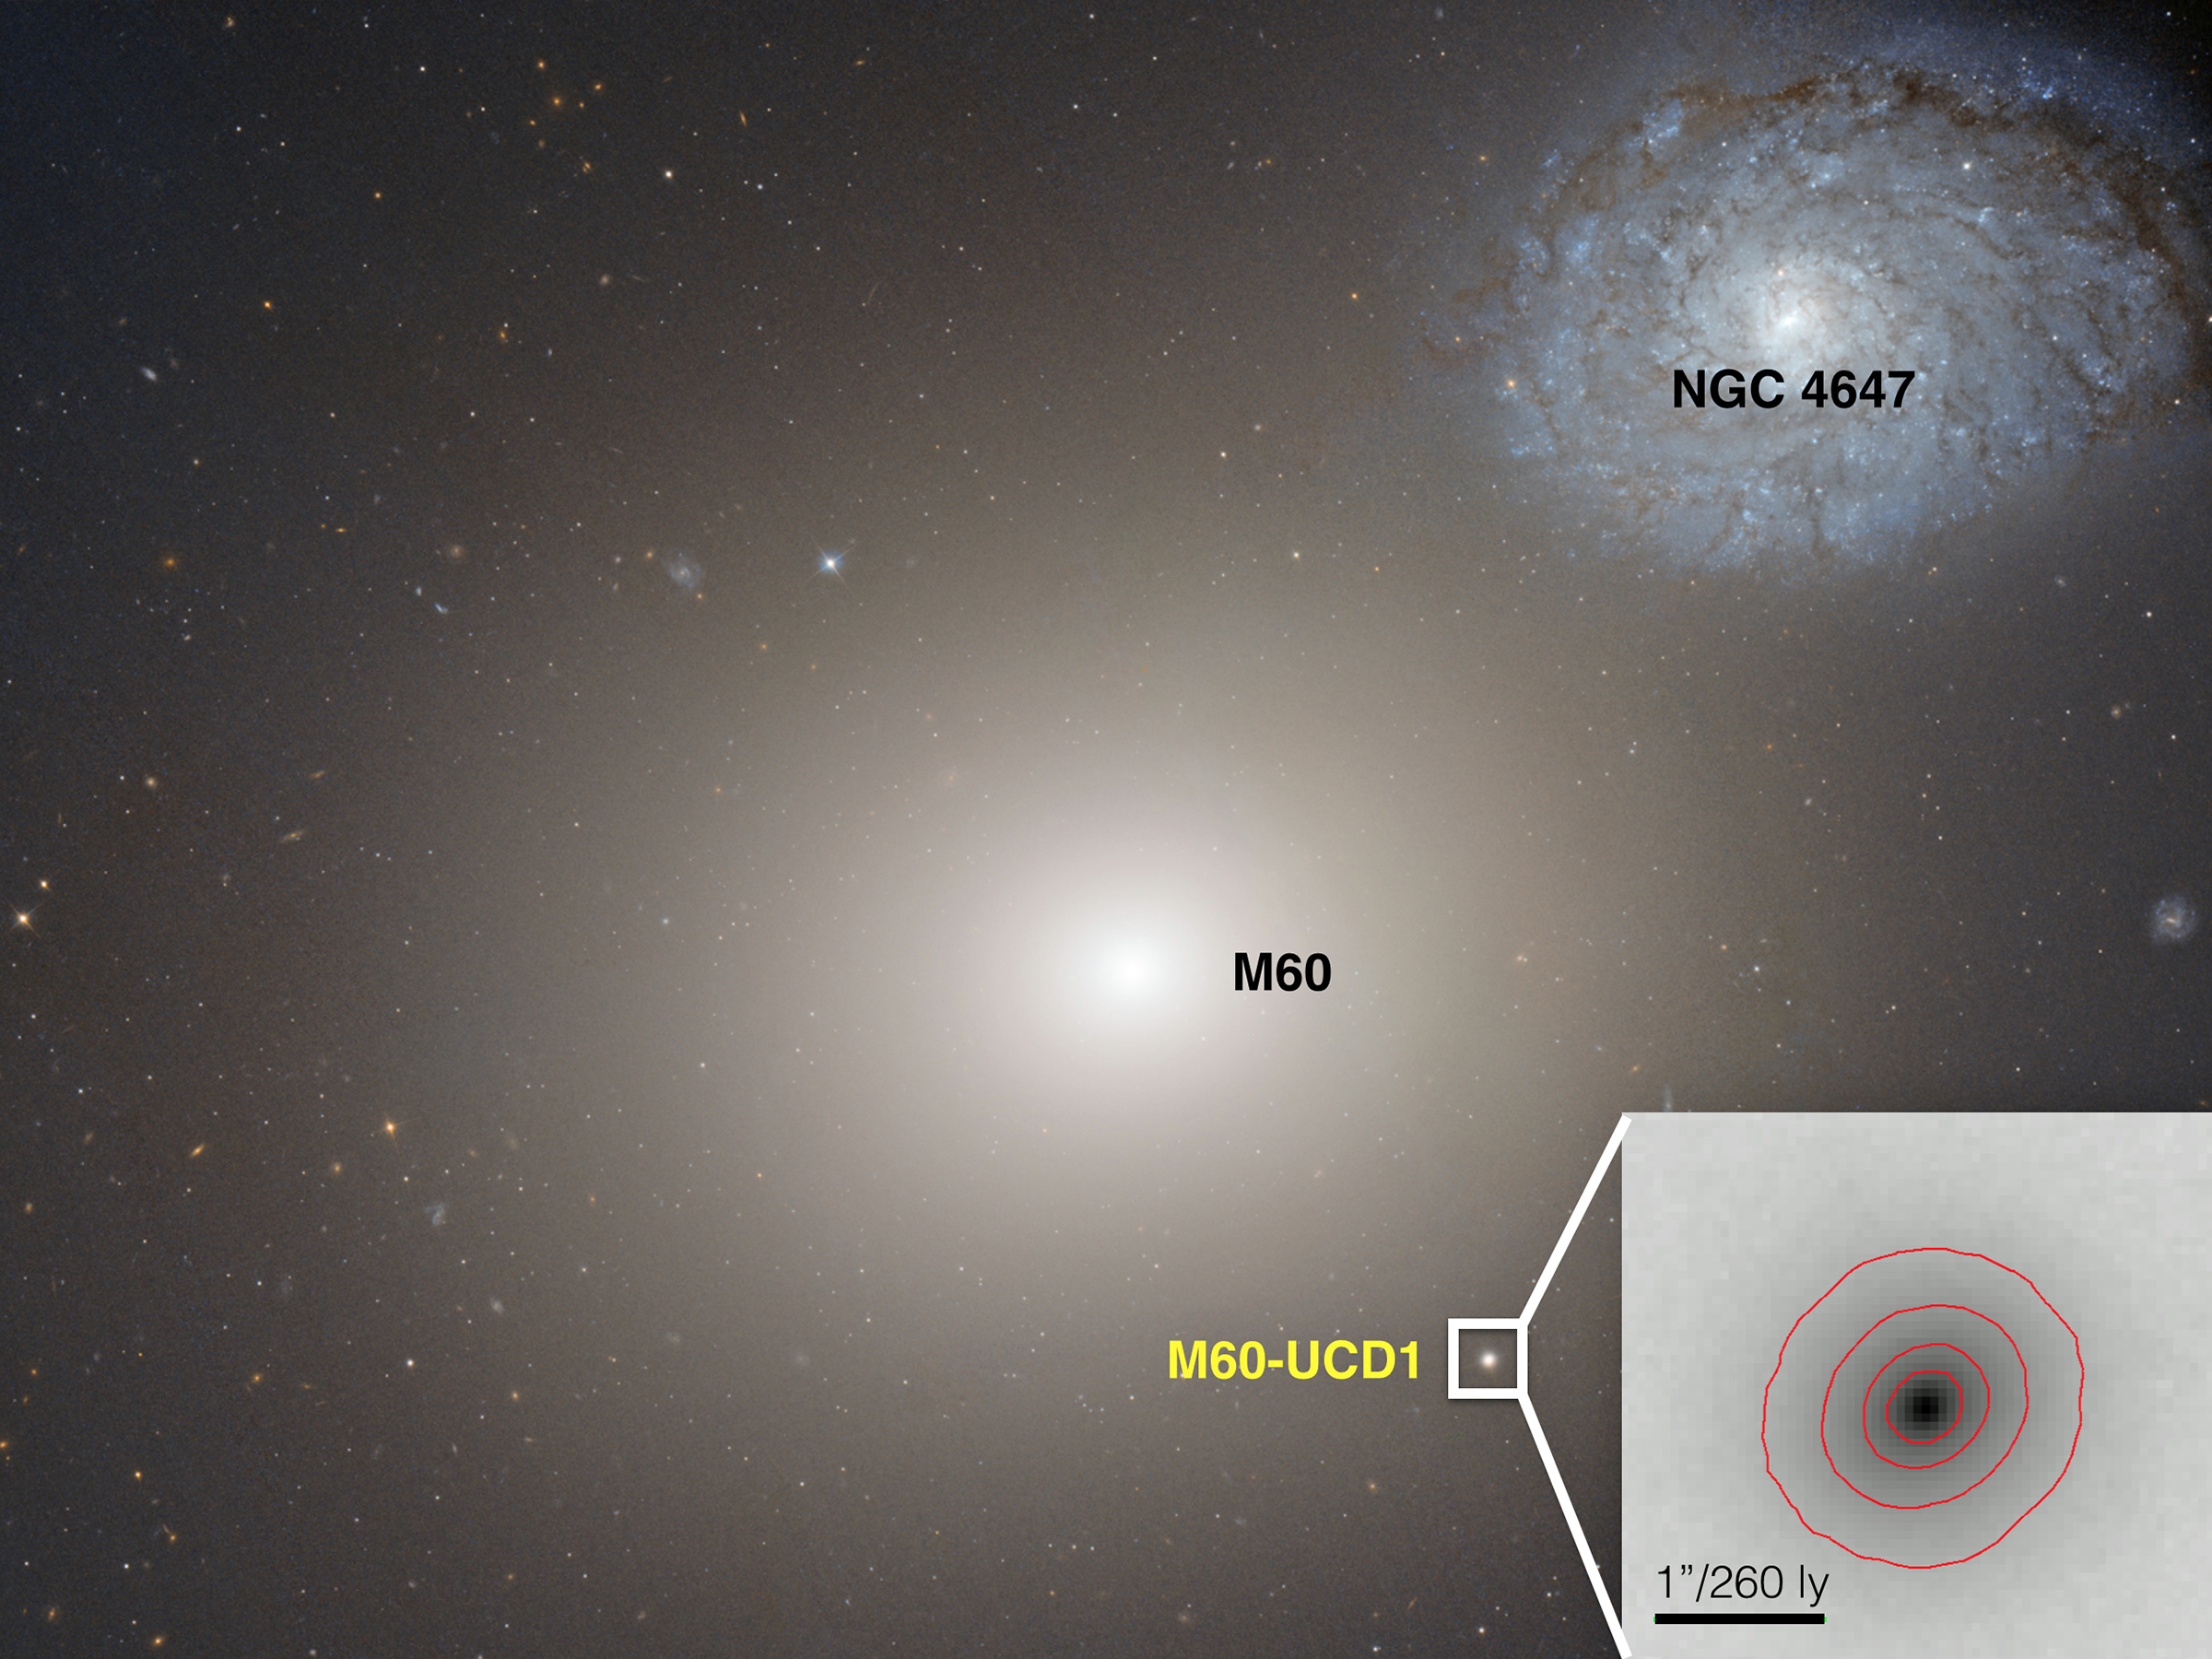 This Hubble Space telescope image shows the gargantuan galaxy M60 in the center, and the ultracompact dwarf galaxy M60-UCD1 below it and to the right, and also enlarged as an inset. A new international study led by University of Utah astronomer Anil Seth and published in the journal Nature found that M60-UCD1 is the smallest known galaxy with a supermassive black hole at its center, suggesting the dwarf galaxy originally was much larger but was stripped of its outer layers by gravity from galaxy M60 over billions of years. M60's gravity also is pulling galaxy NGC4647, upper right, and the two eventually will collide.